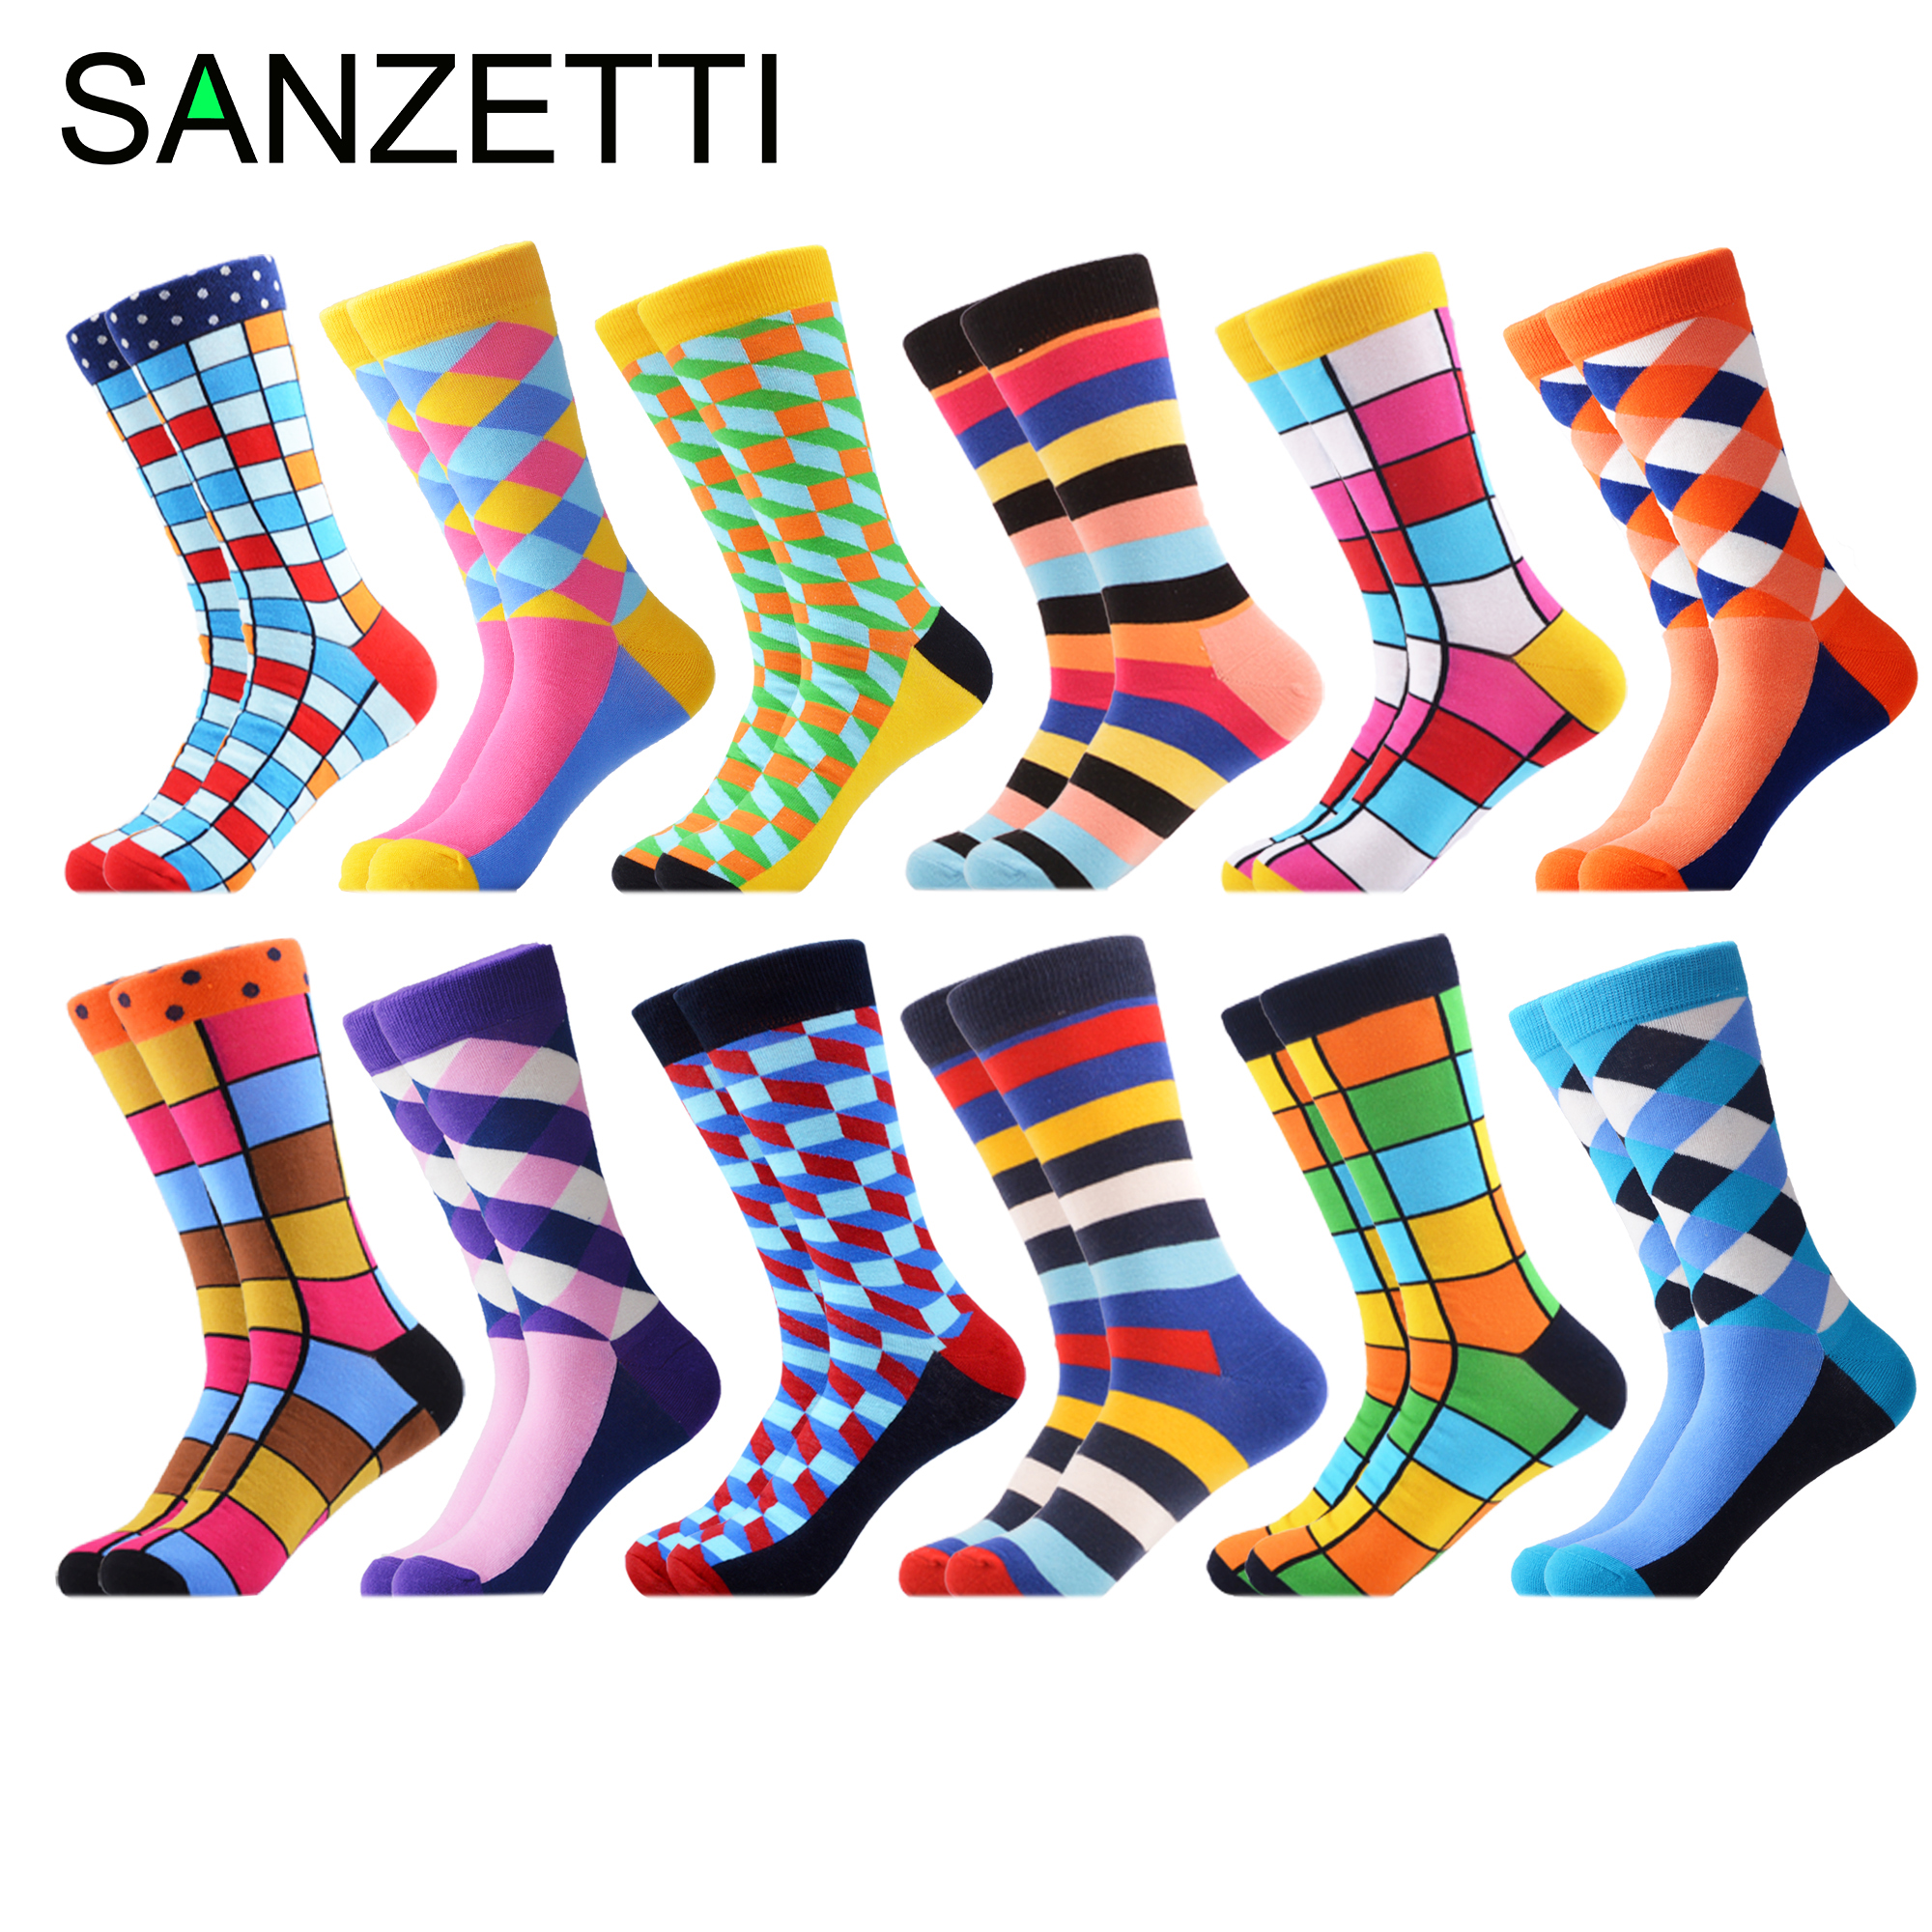 SANZETTI Men's Funny Combed Cotton Crew Socks Colorful Grid Multi Comfy Dress Casual Sock Happy Winter Novelty Party Gifts Socks